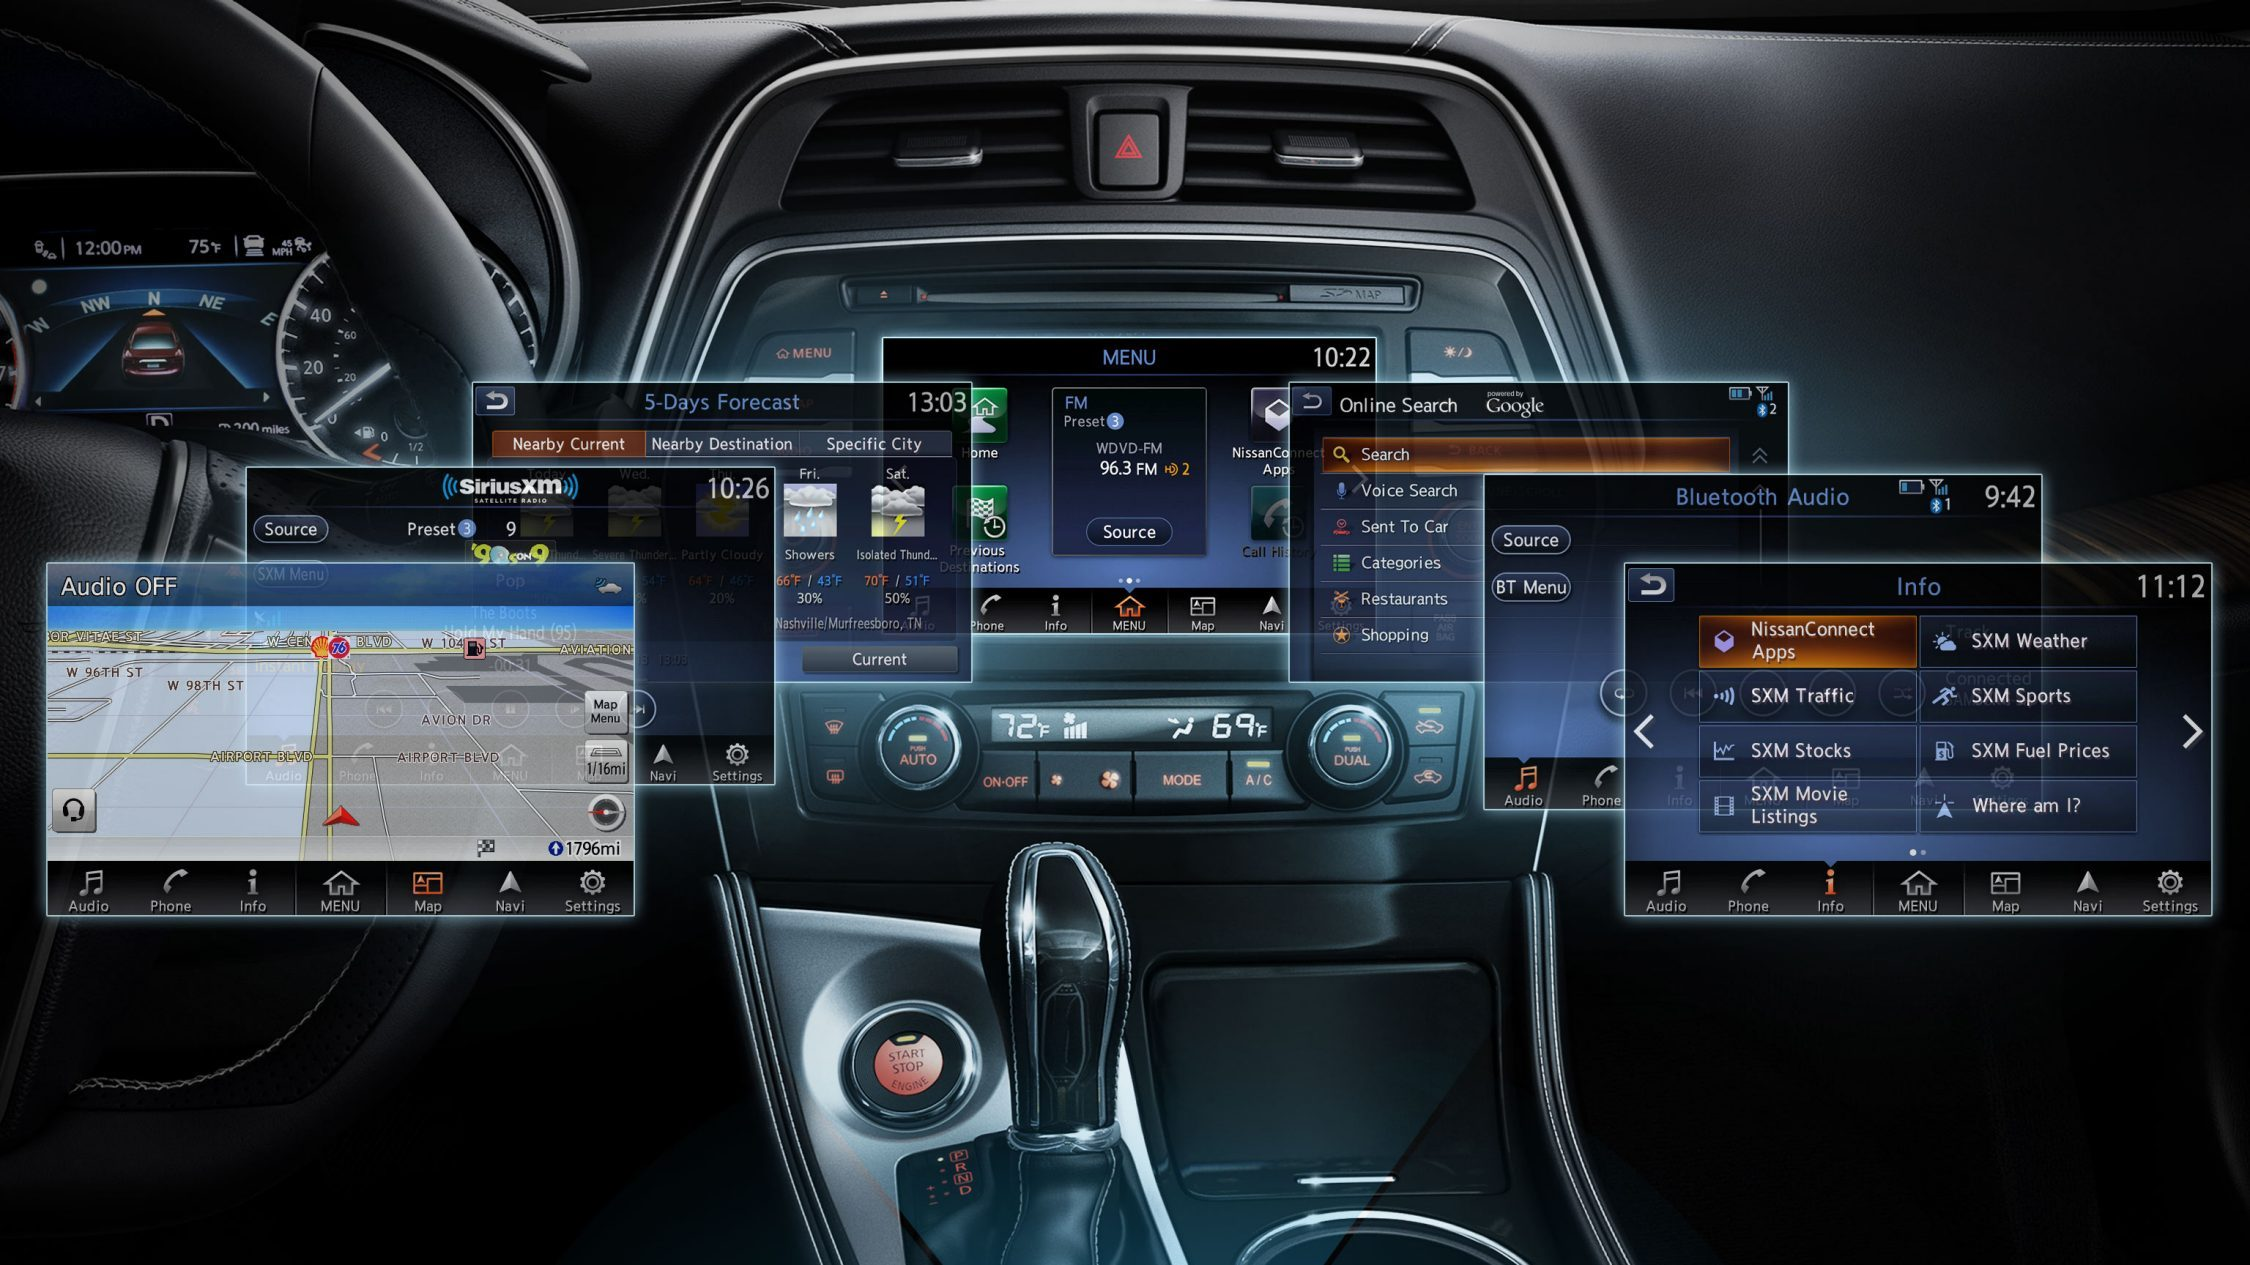 NissanConnect with multiple screens.